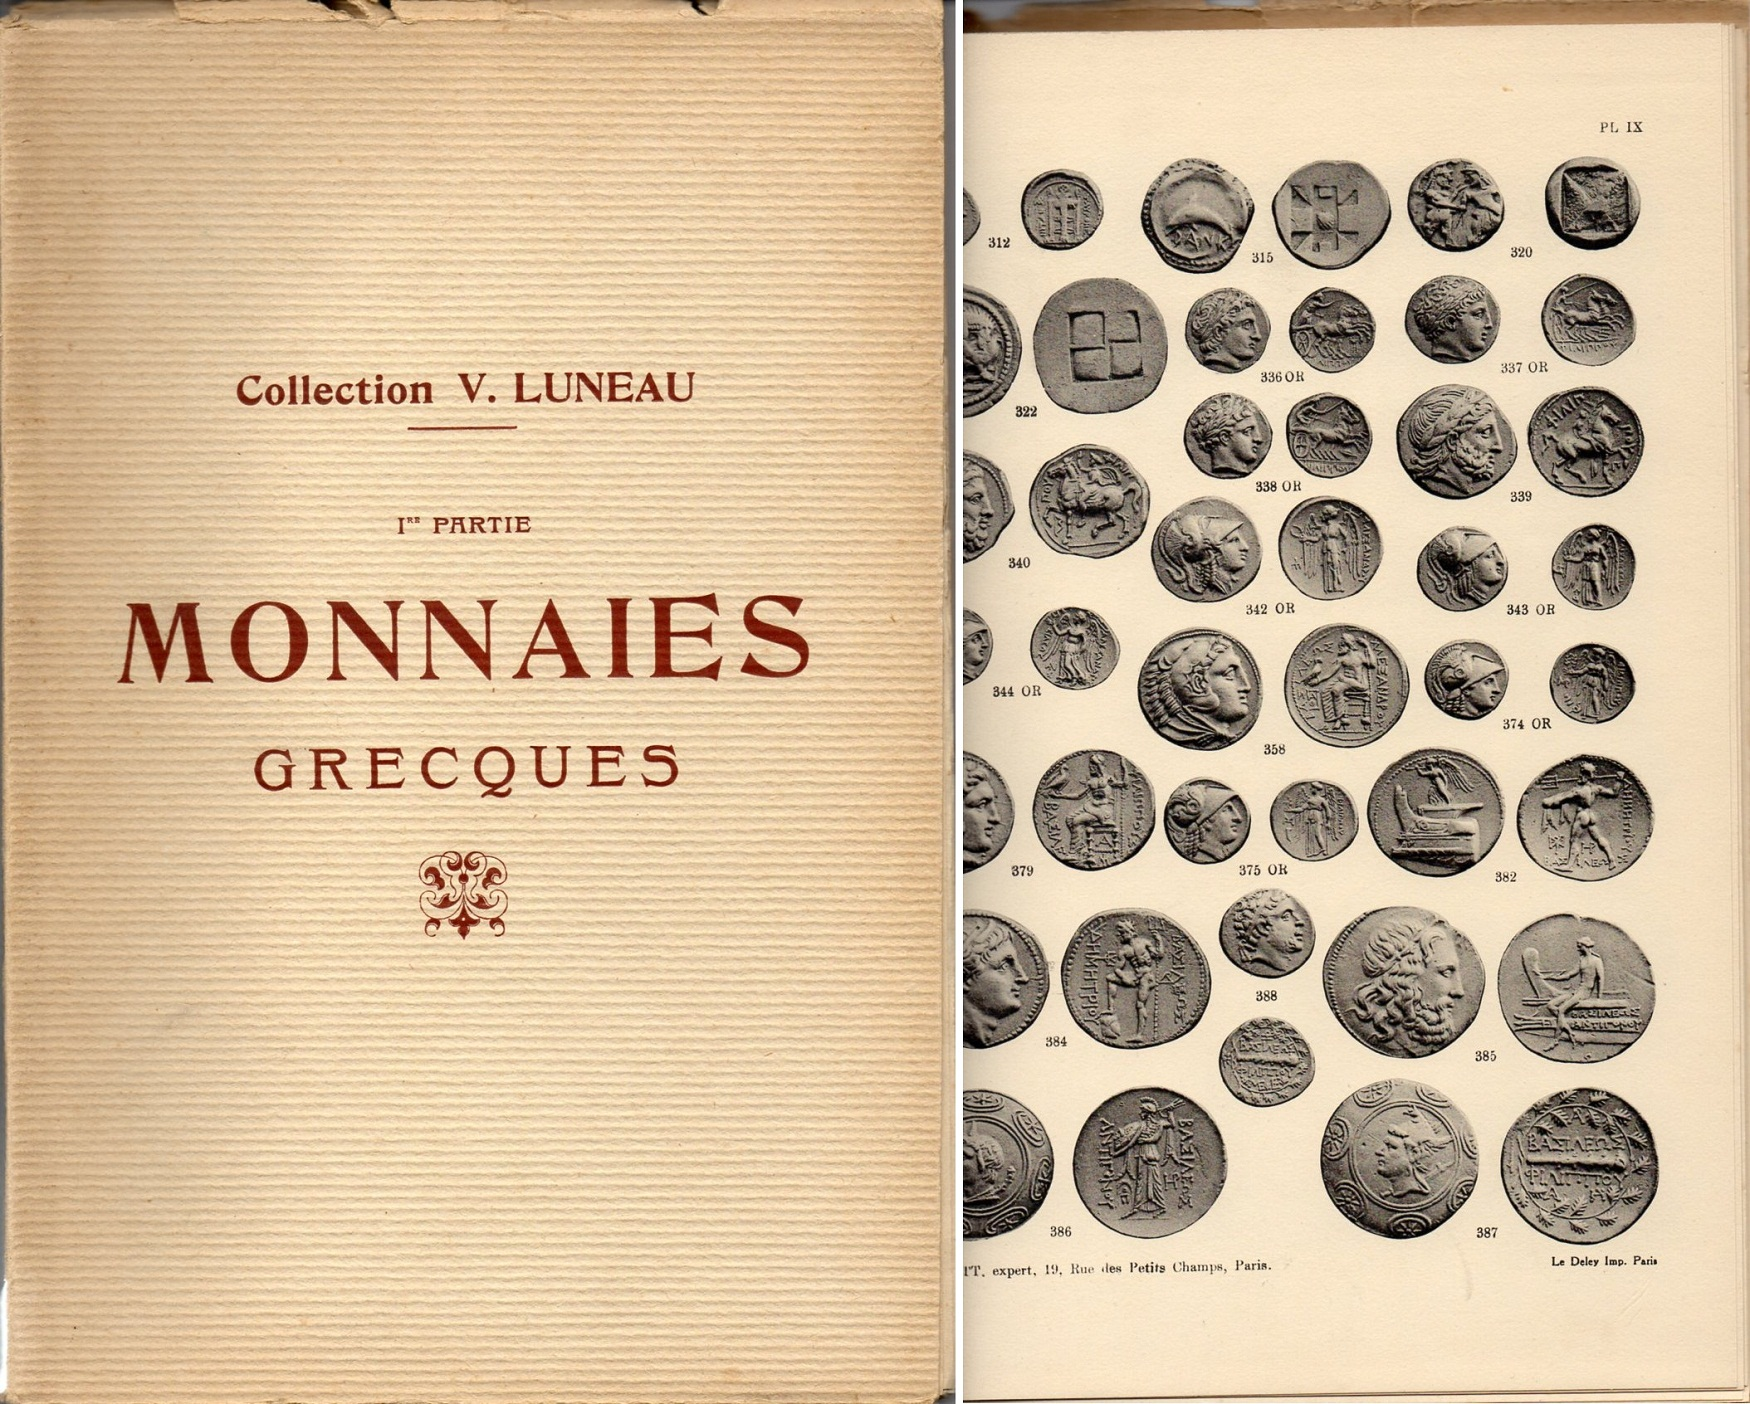 COLLECTION V. LUNEAU : MONNAIES GRECQUES